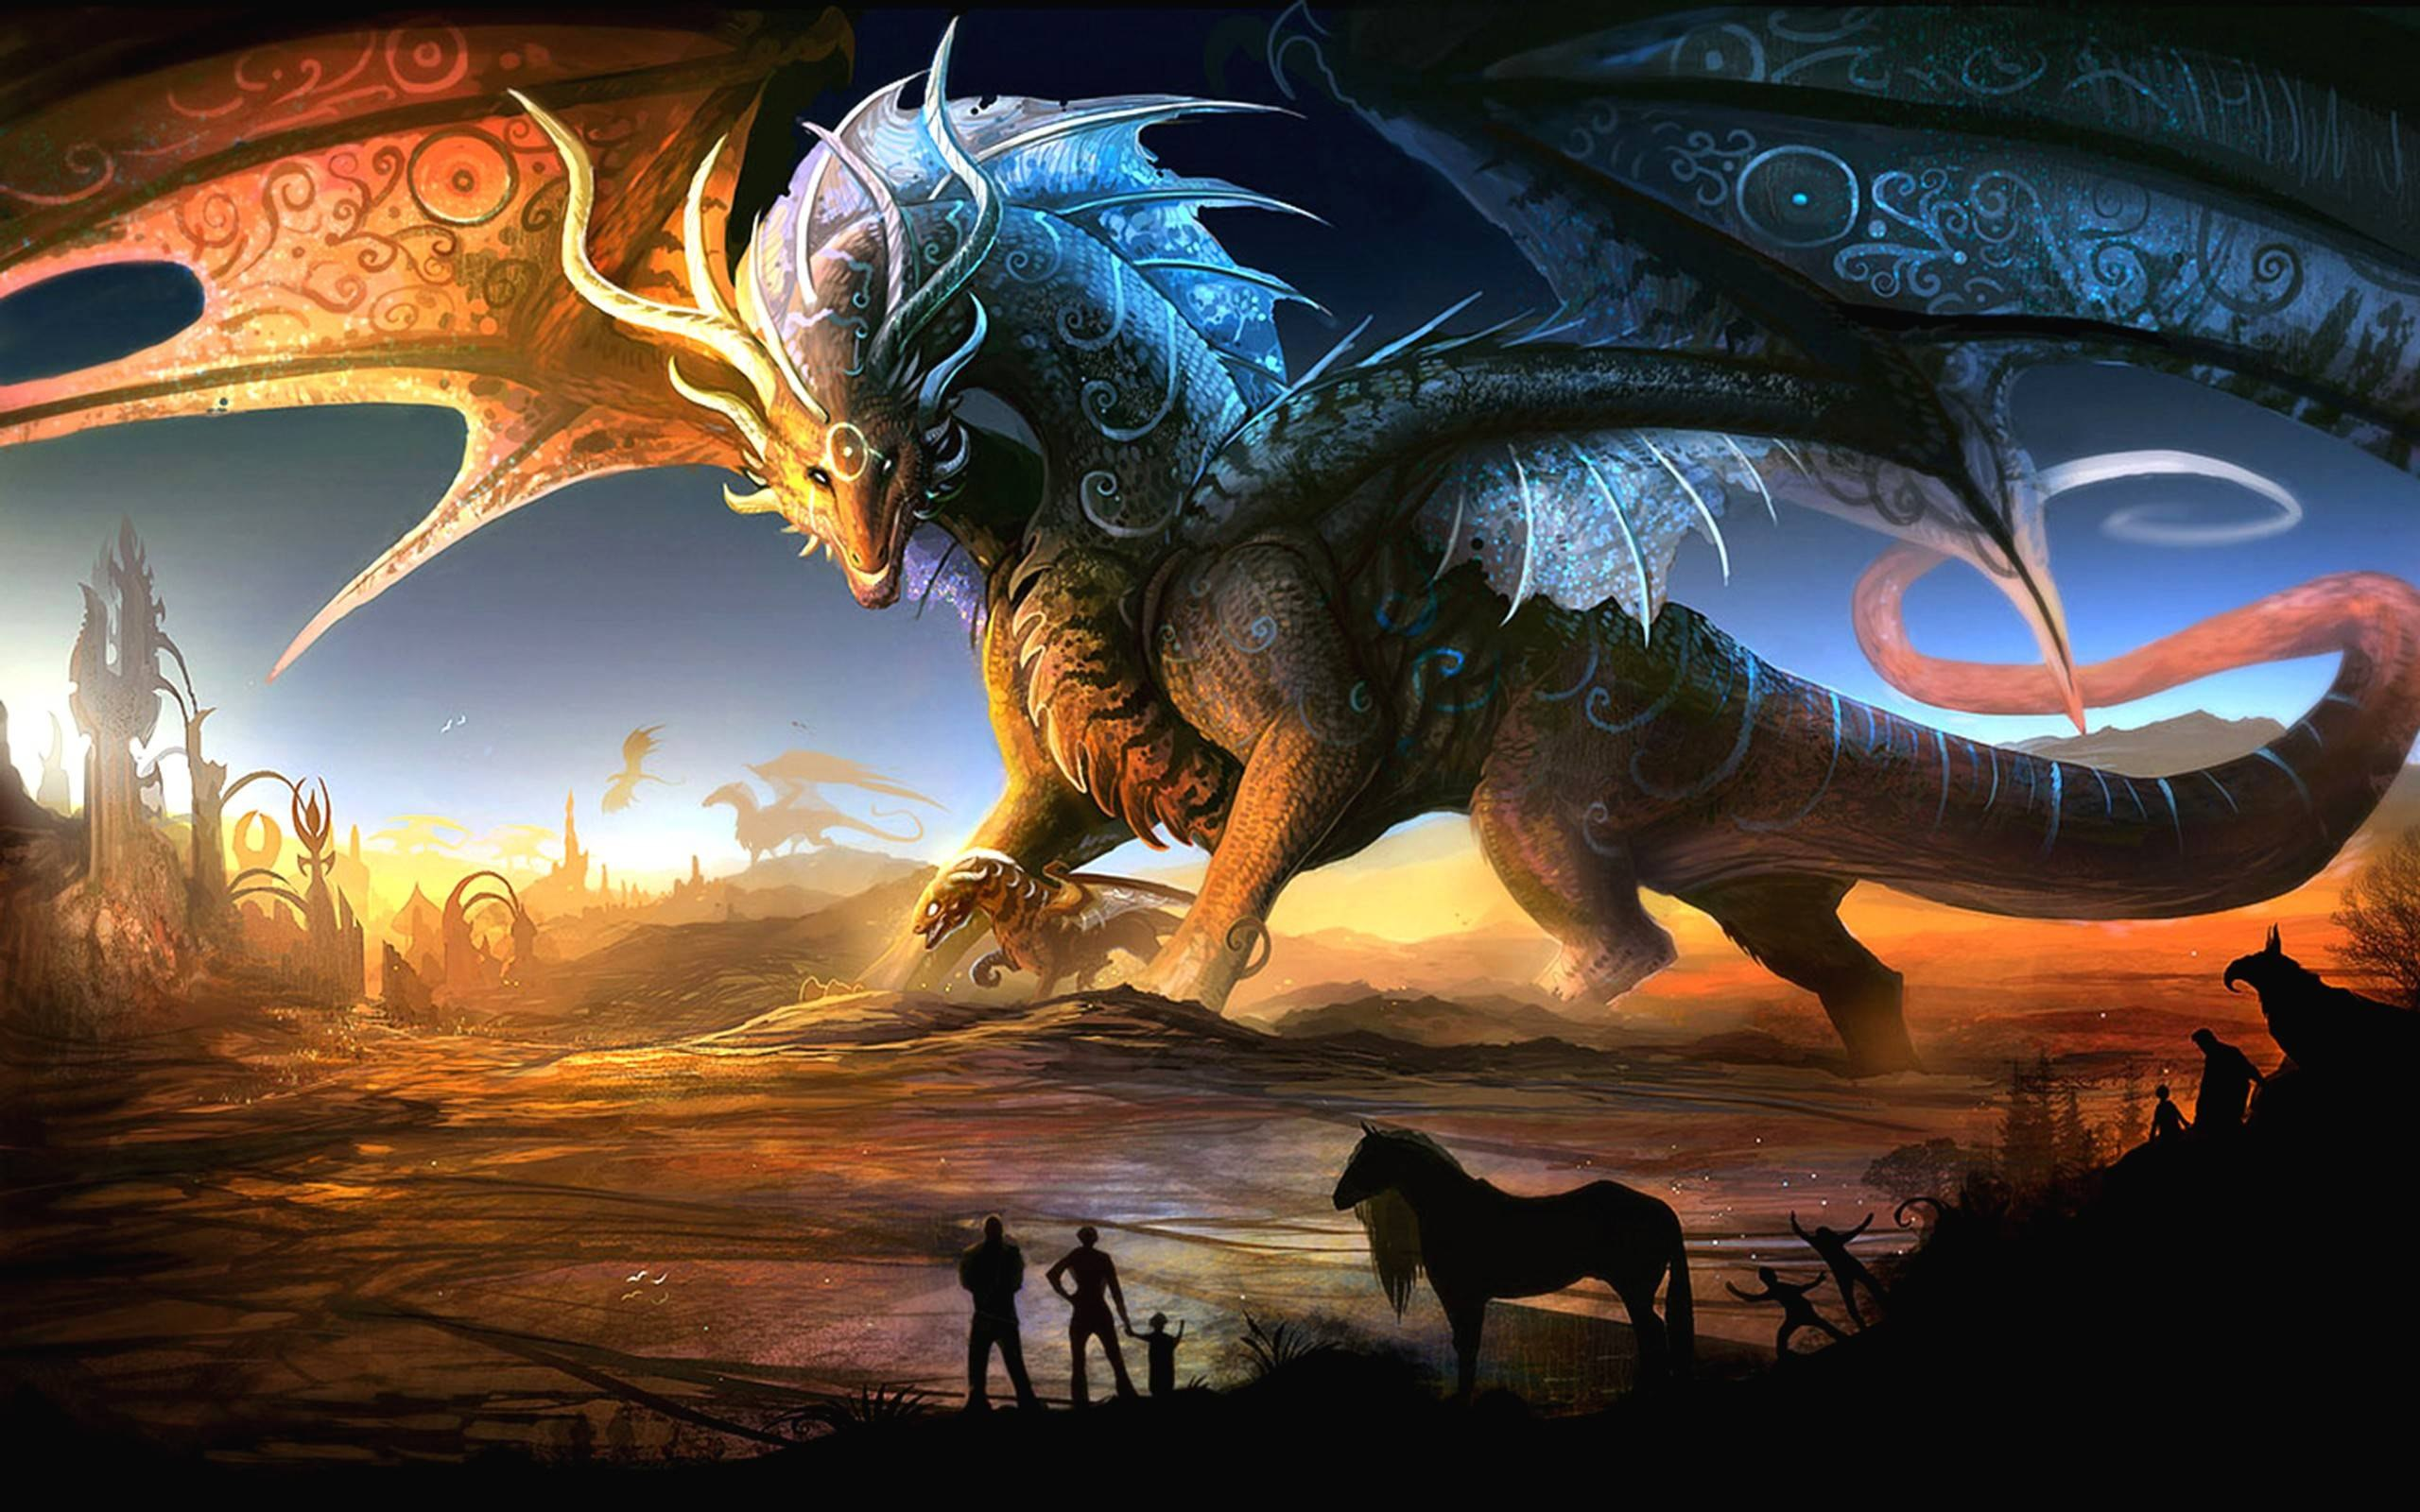 Dragon Wallpaper 1 of 23 Game Lovers Background HD Wallpapers